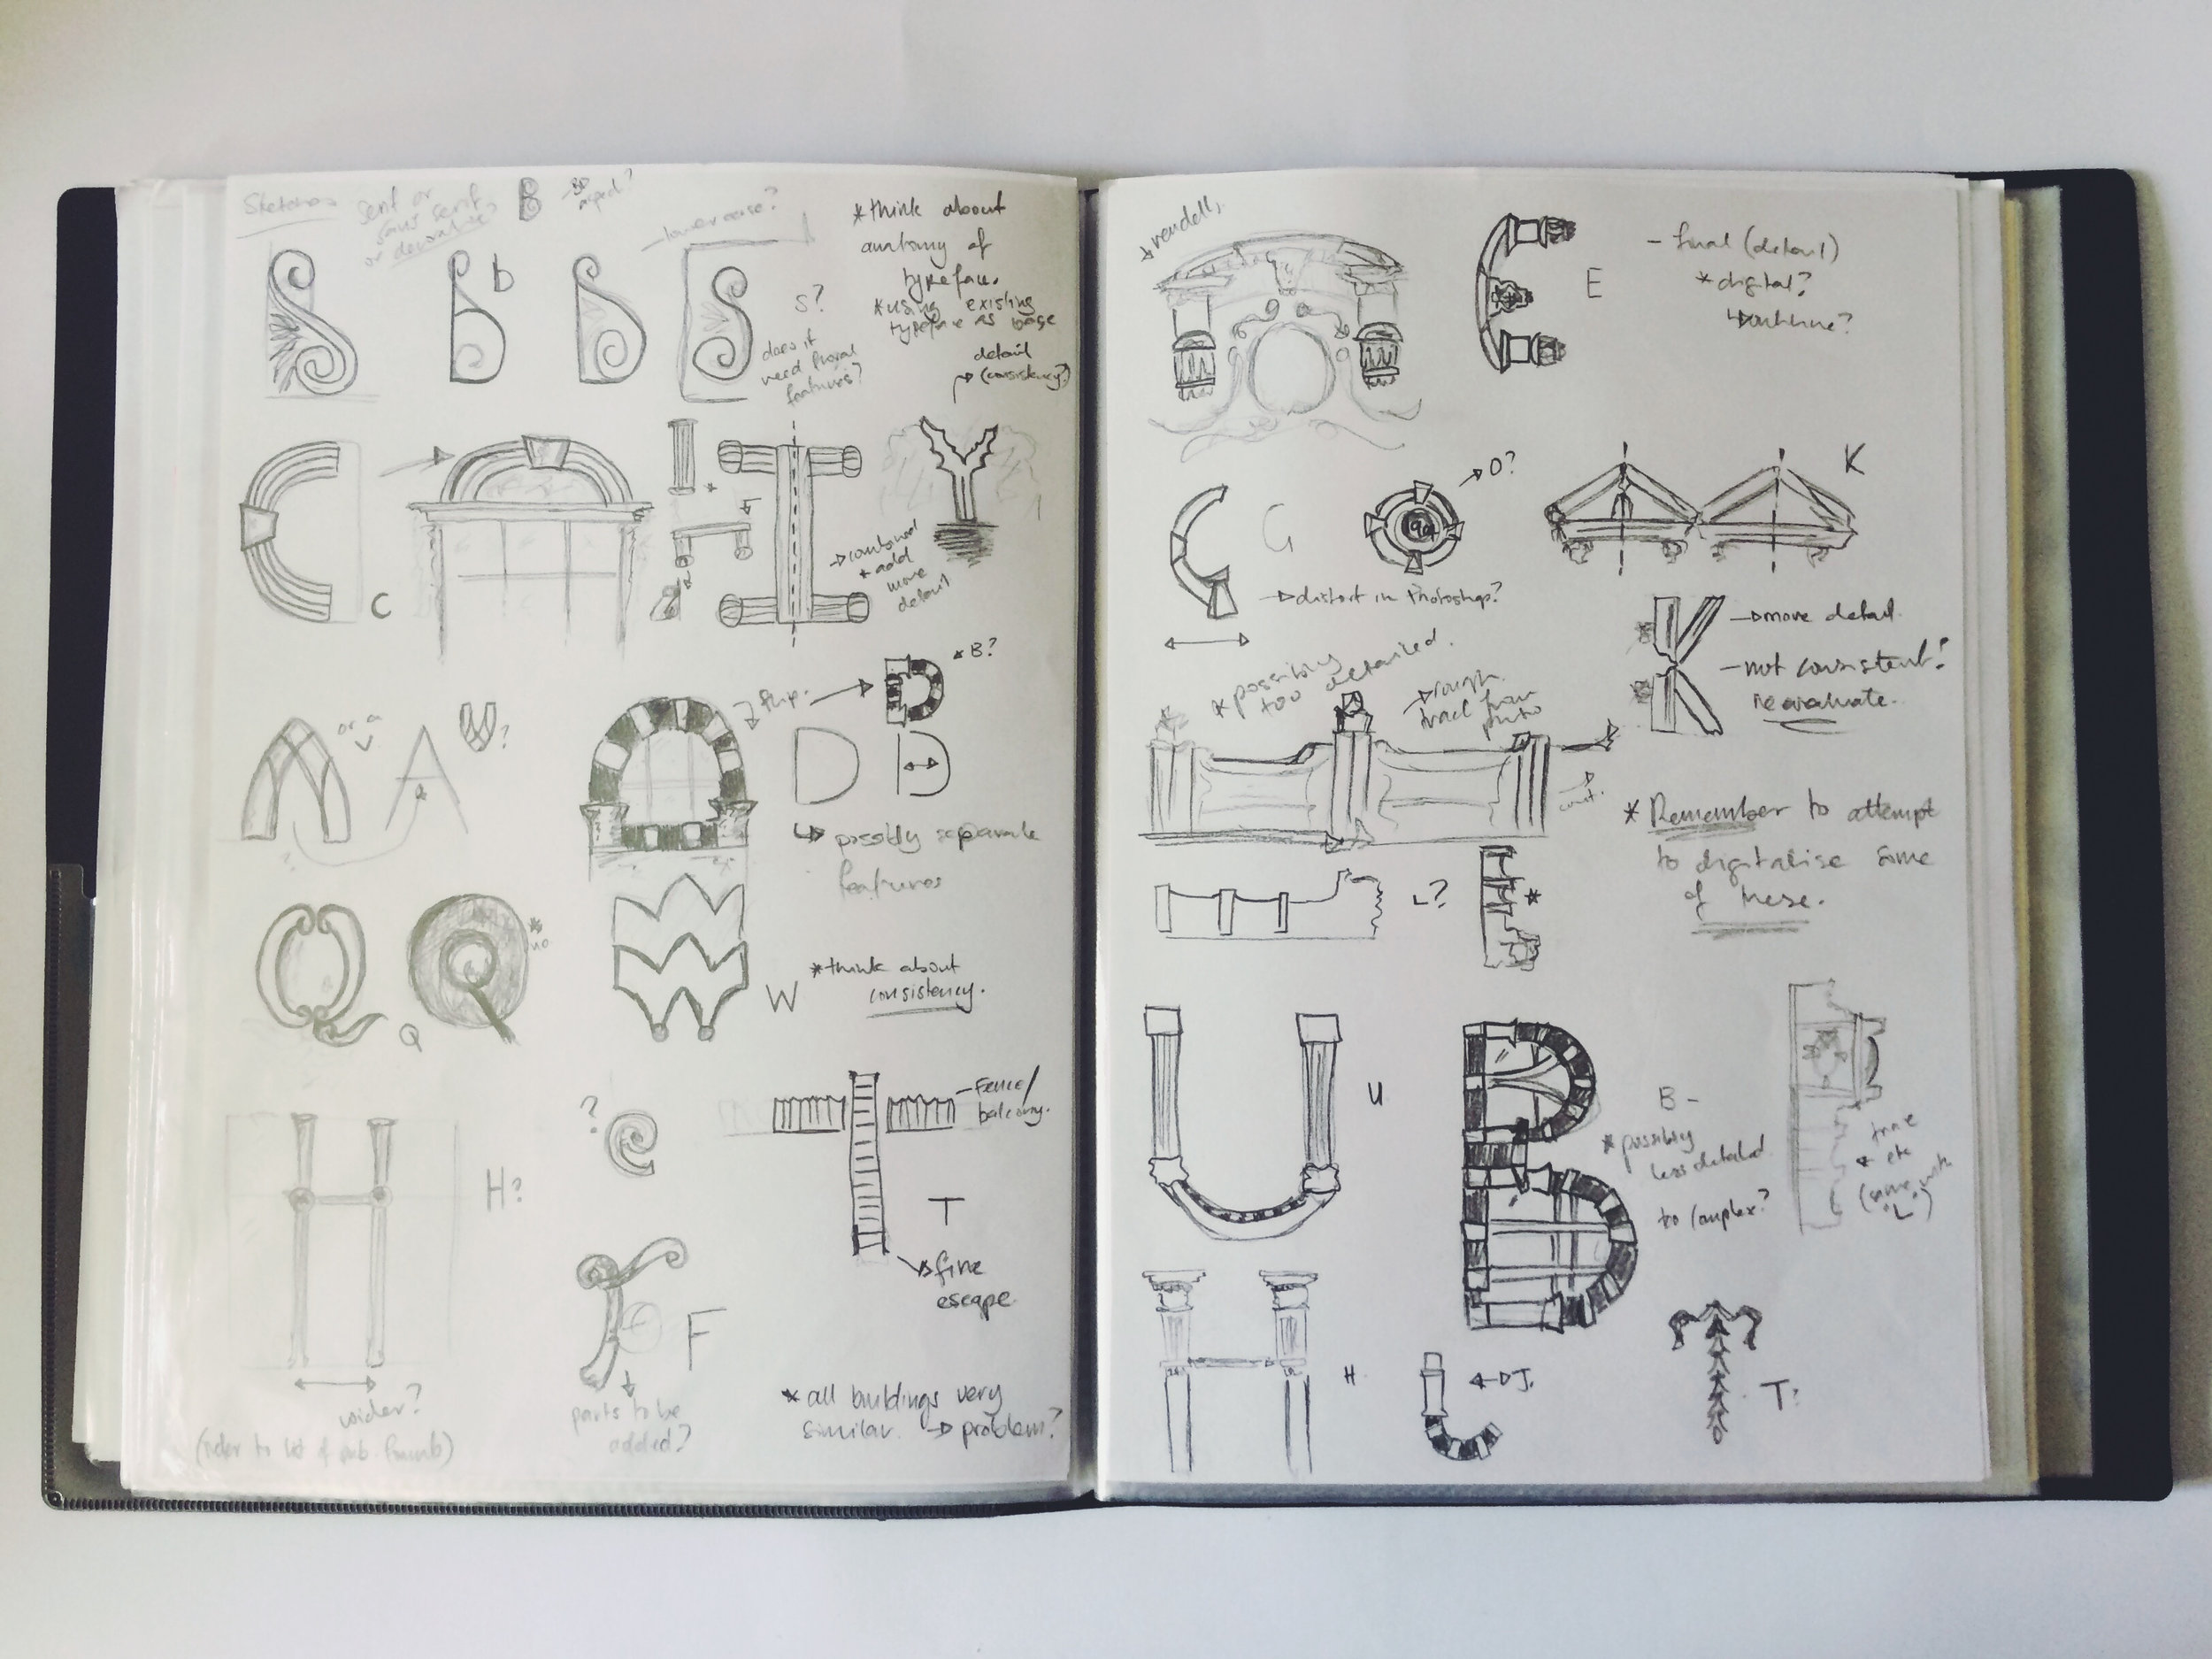 Above: Alisha's sketchbook and research for her 'Architypes' project